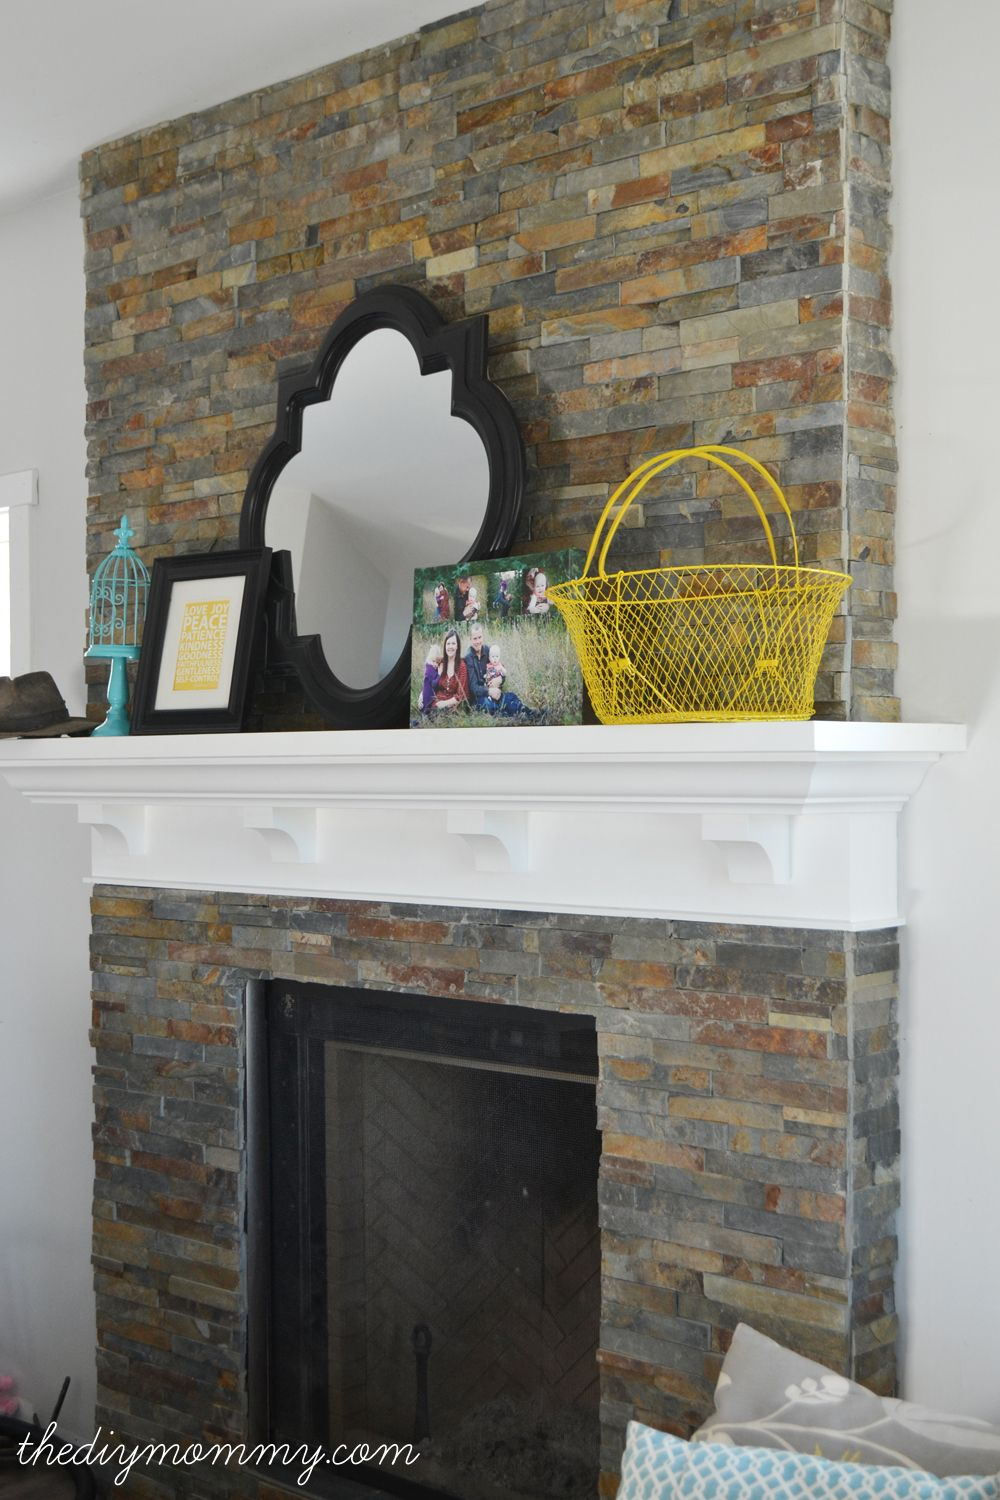 How To Install Stacked Stone On Interior Wall Ideas Exterior Faux